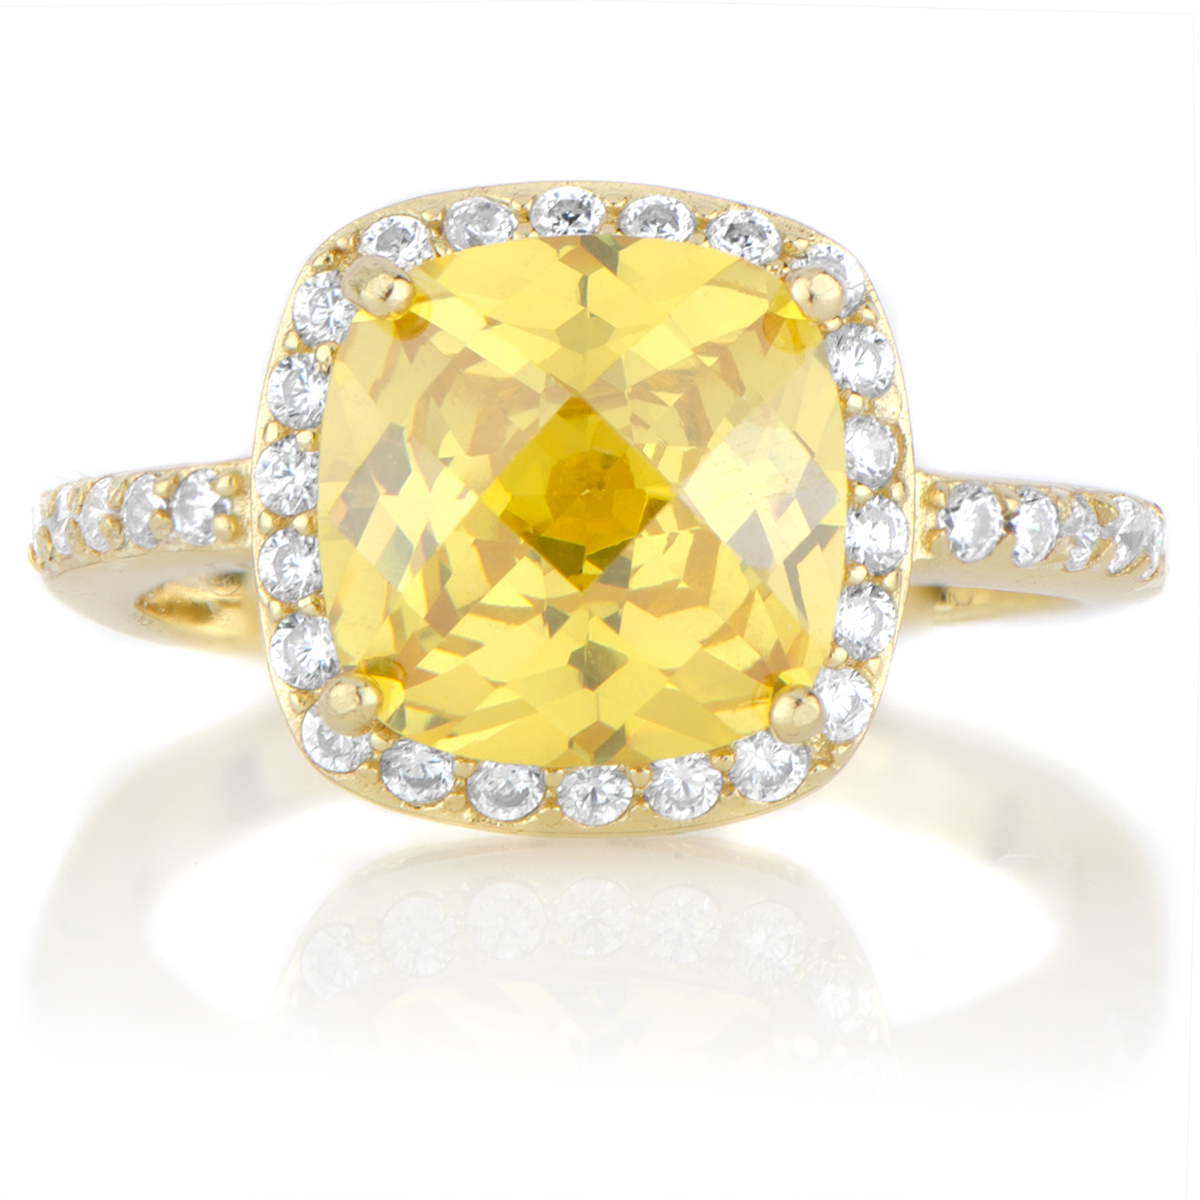 Julianna's Simulated Canary Simulated Diamond Ring  Goldtone Roll Off  Image To Close Zoom Window